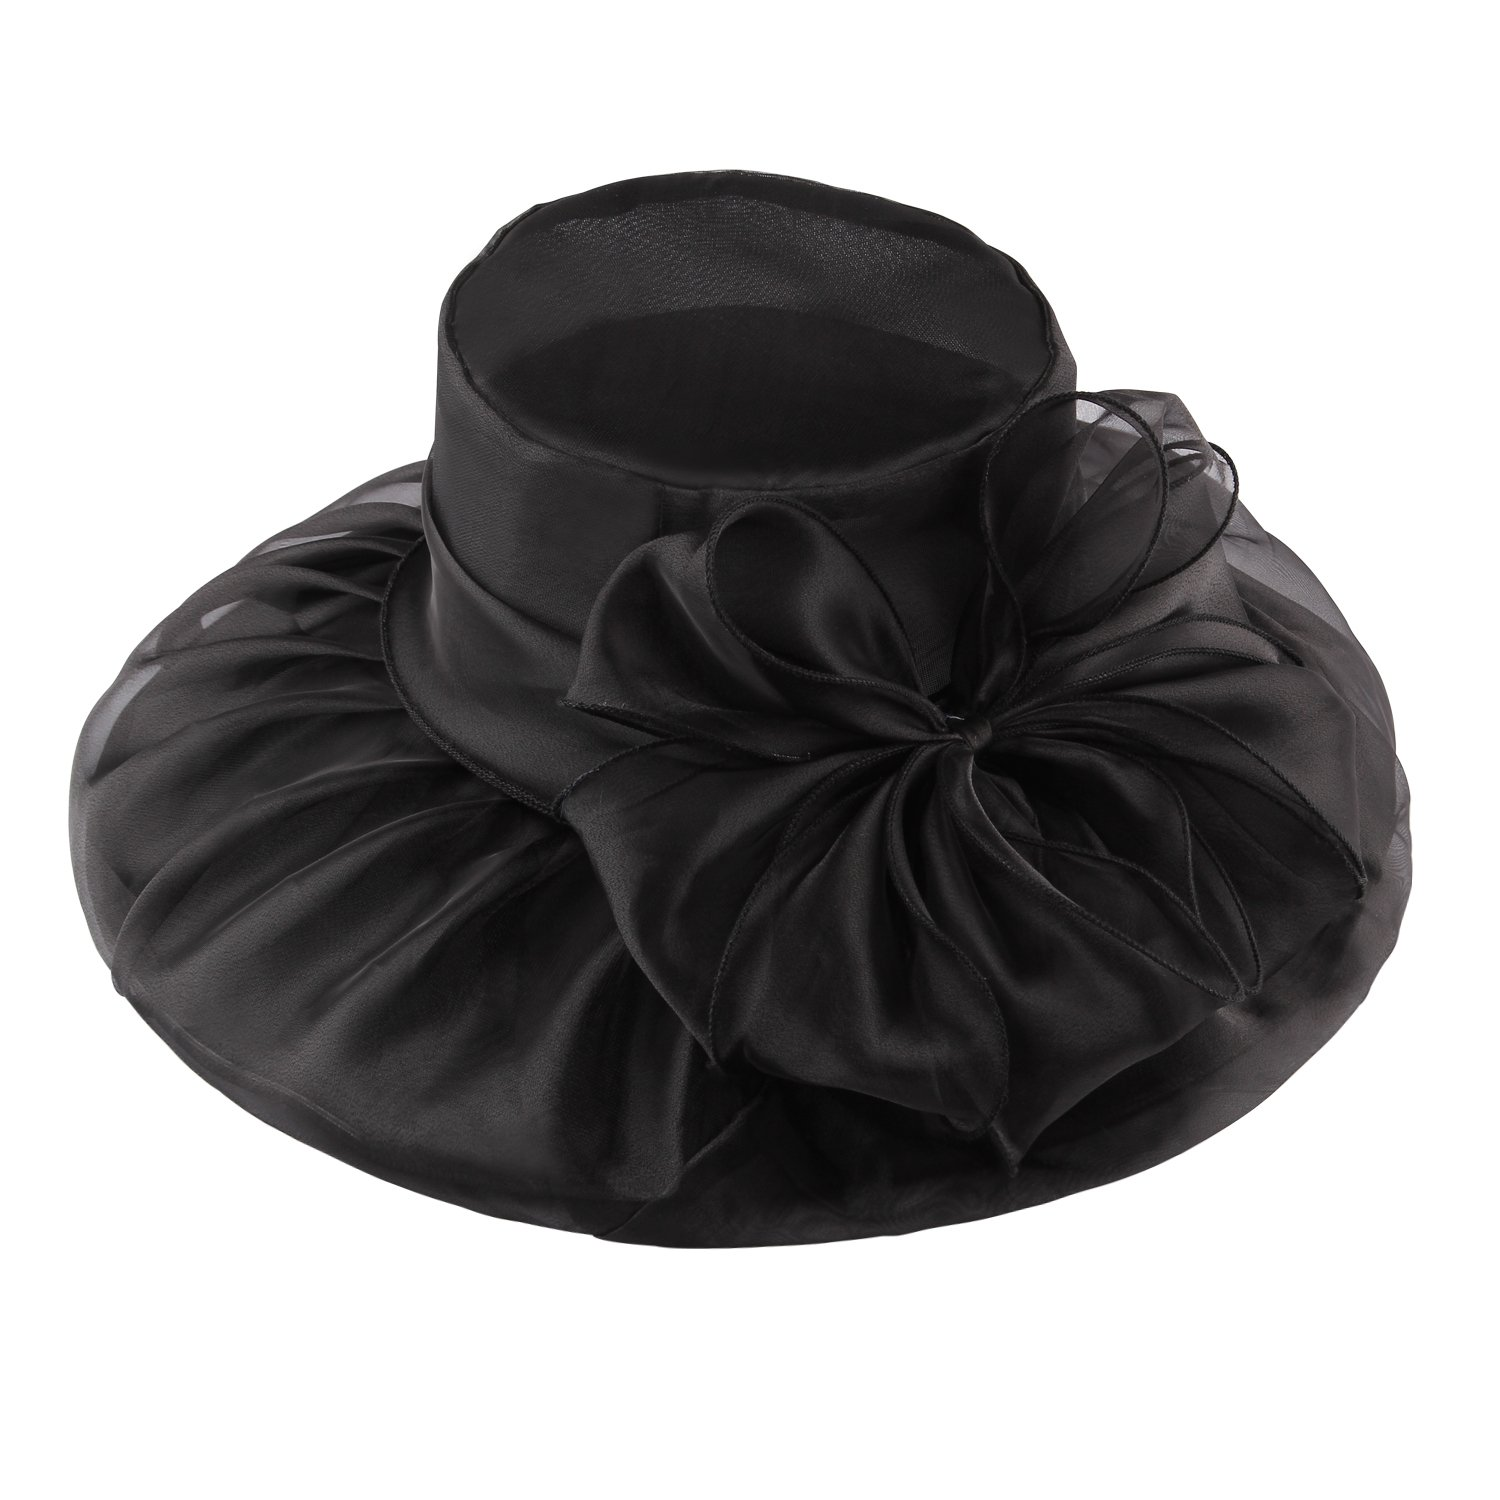 Steampunk Hats | Top Hats | Bowler Acecharming Women Organza Kentucky Derby Fascinator Lady Cocktail Tea Party Church Wedding Bridal Flower Hat $12.99 AT vintagedancer.com